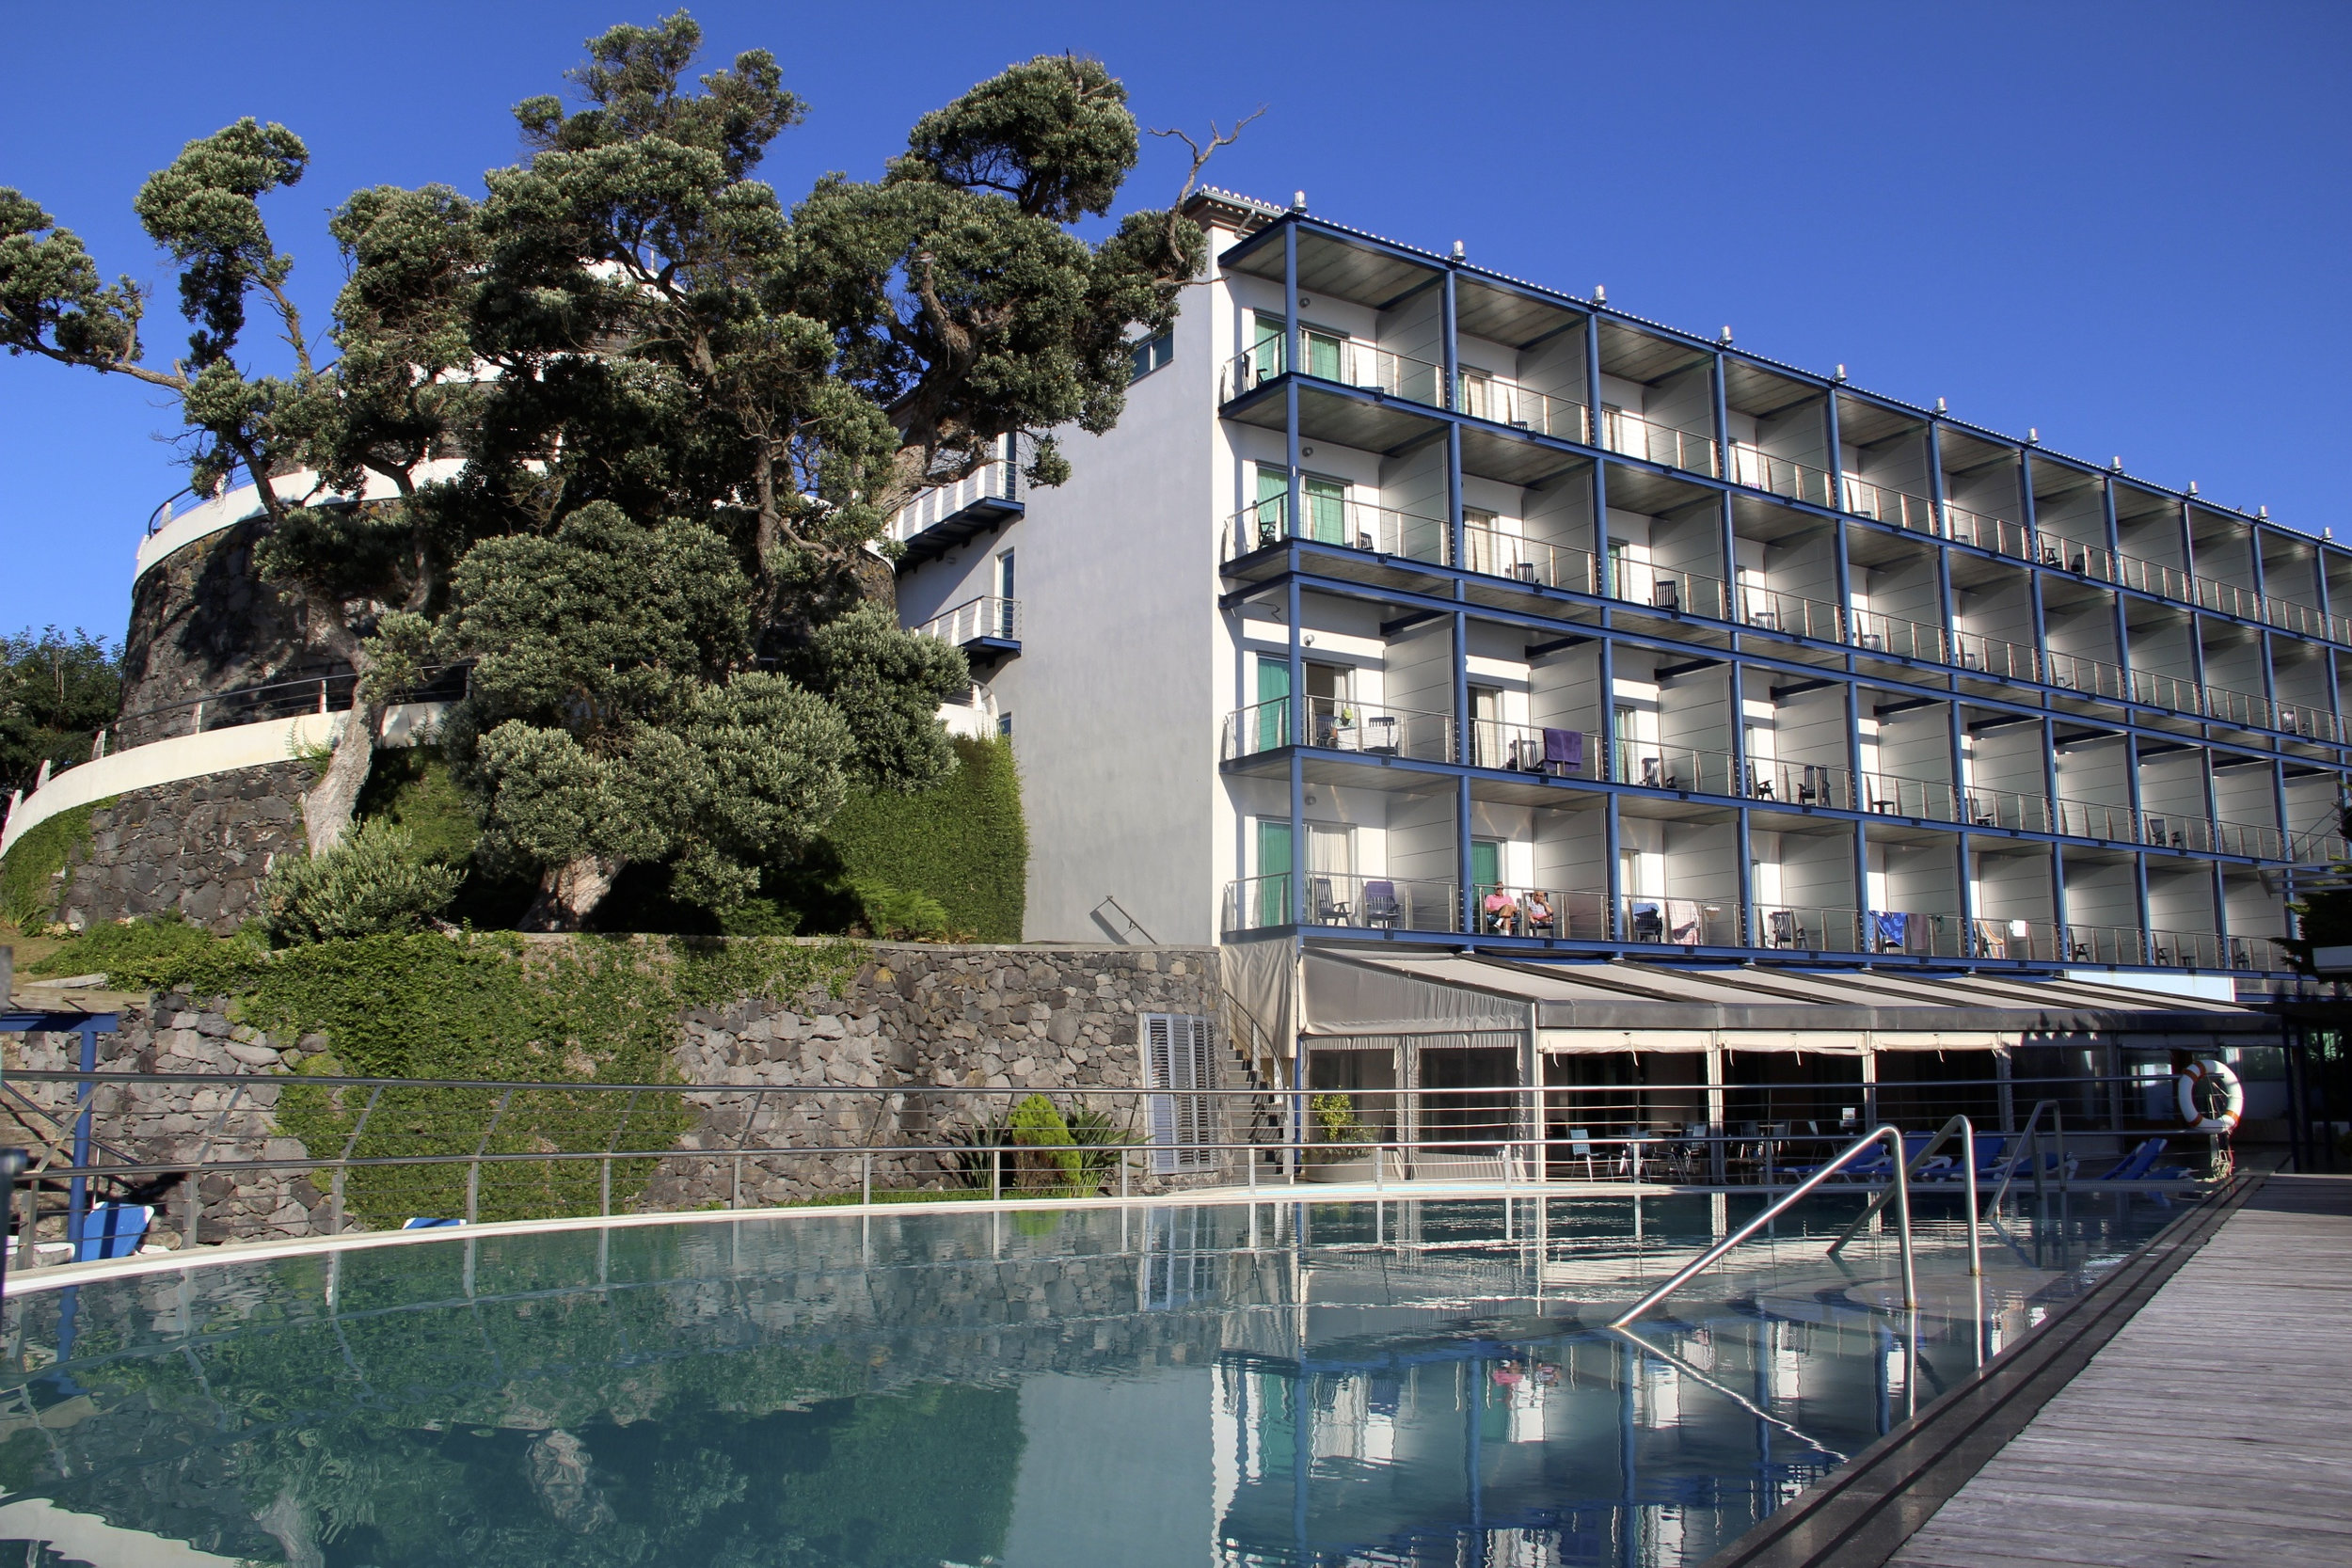 4* Hotel do Caracol - Terceira